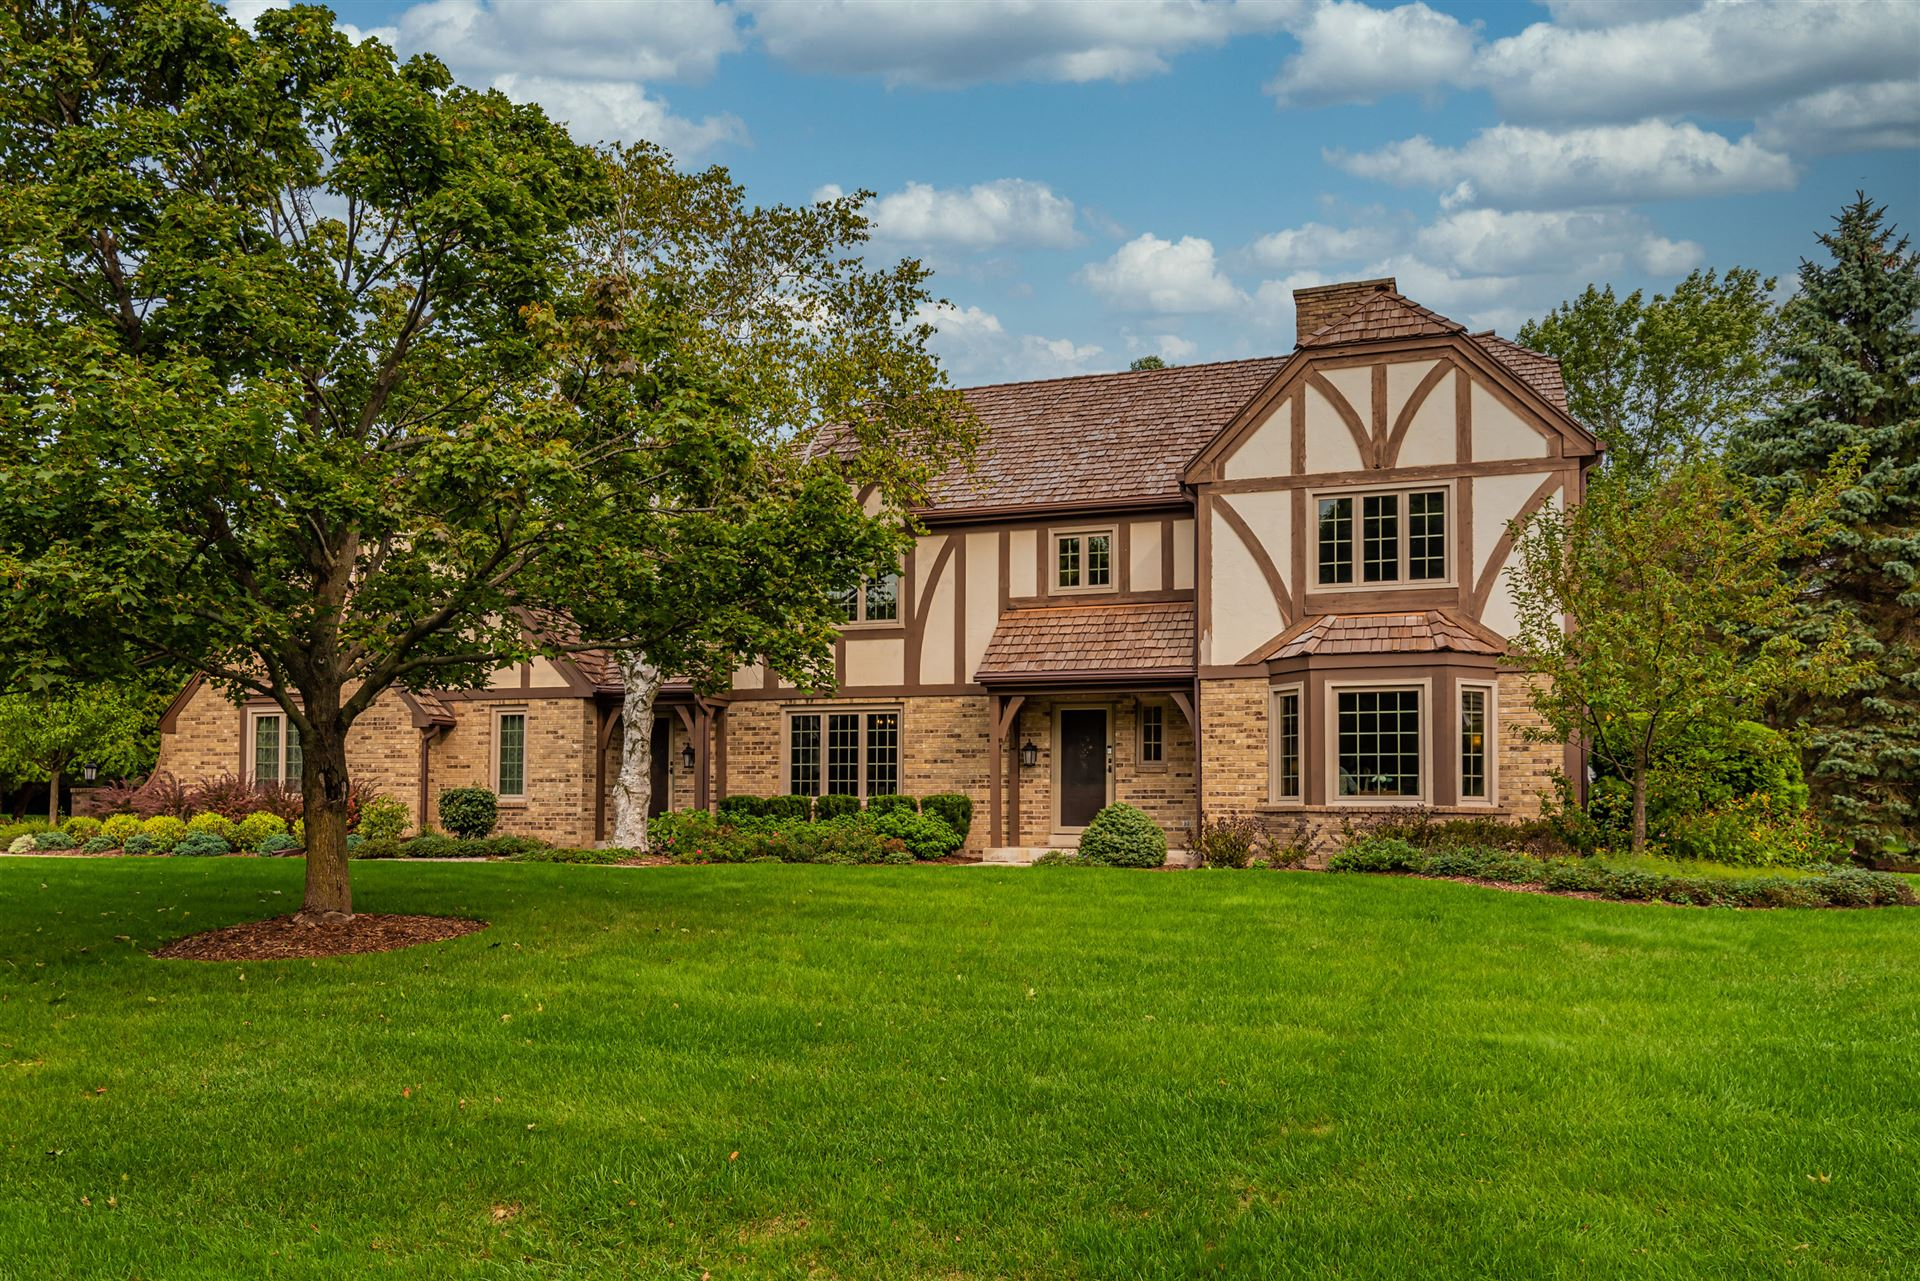 11110 N Wyngate Trace, Mequon, WI 53092 - #: 1711477